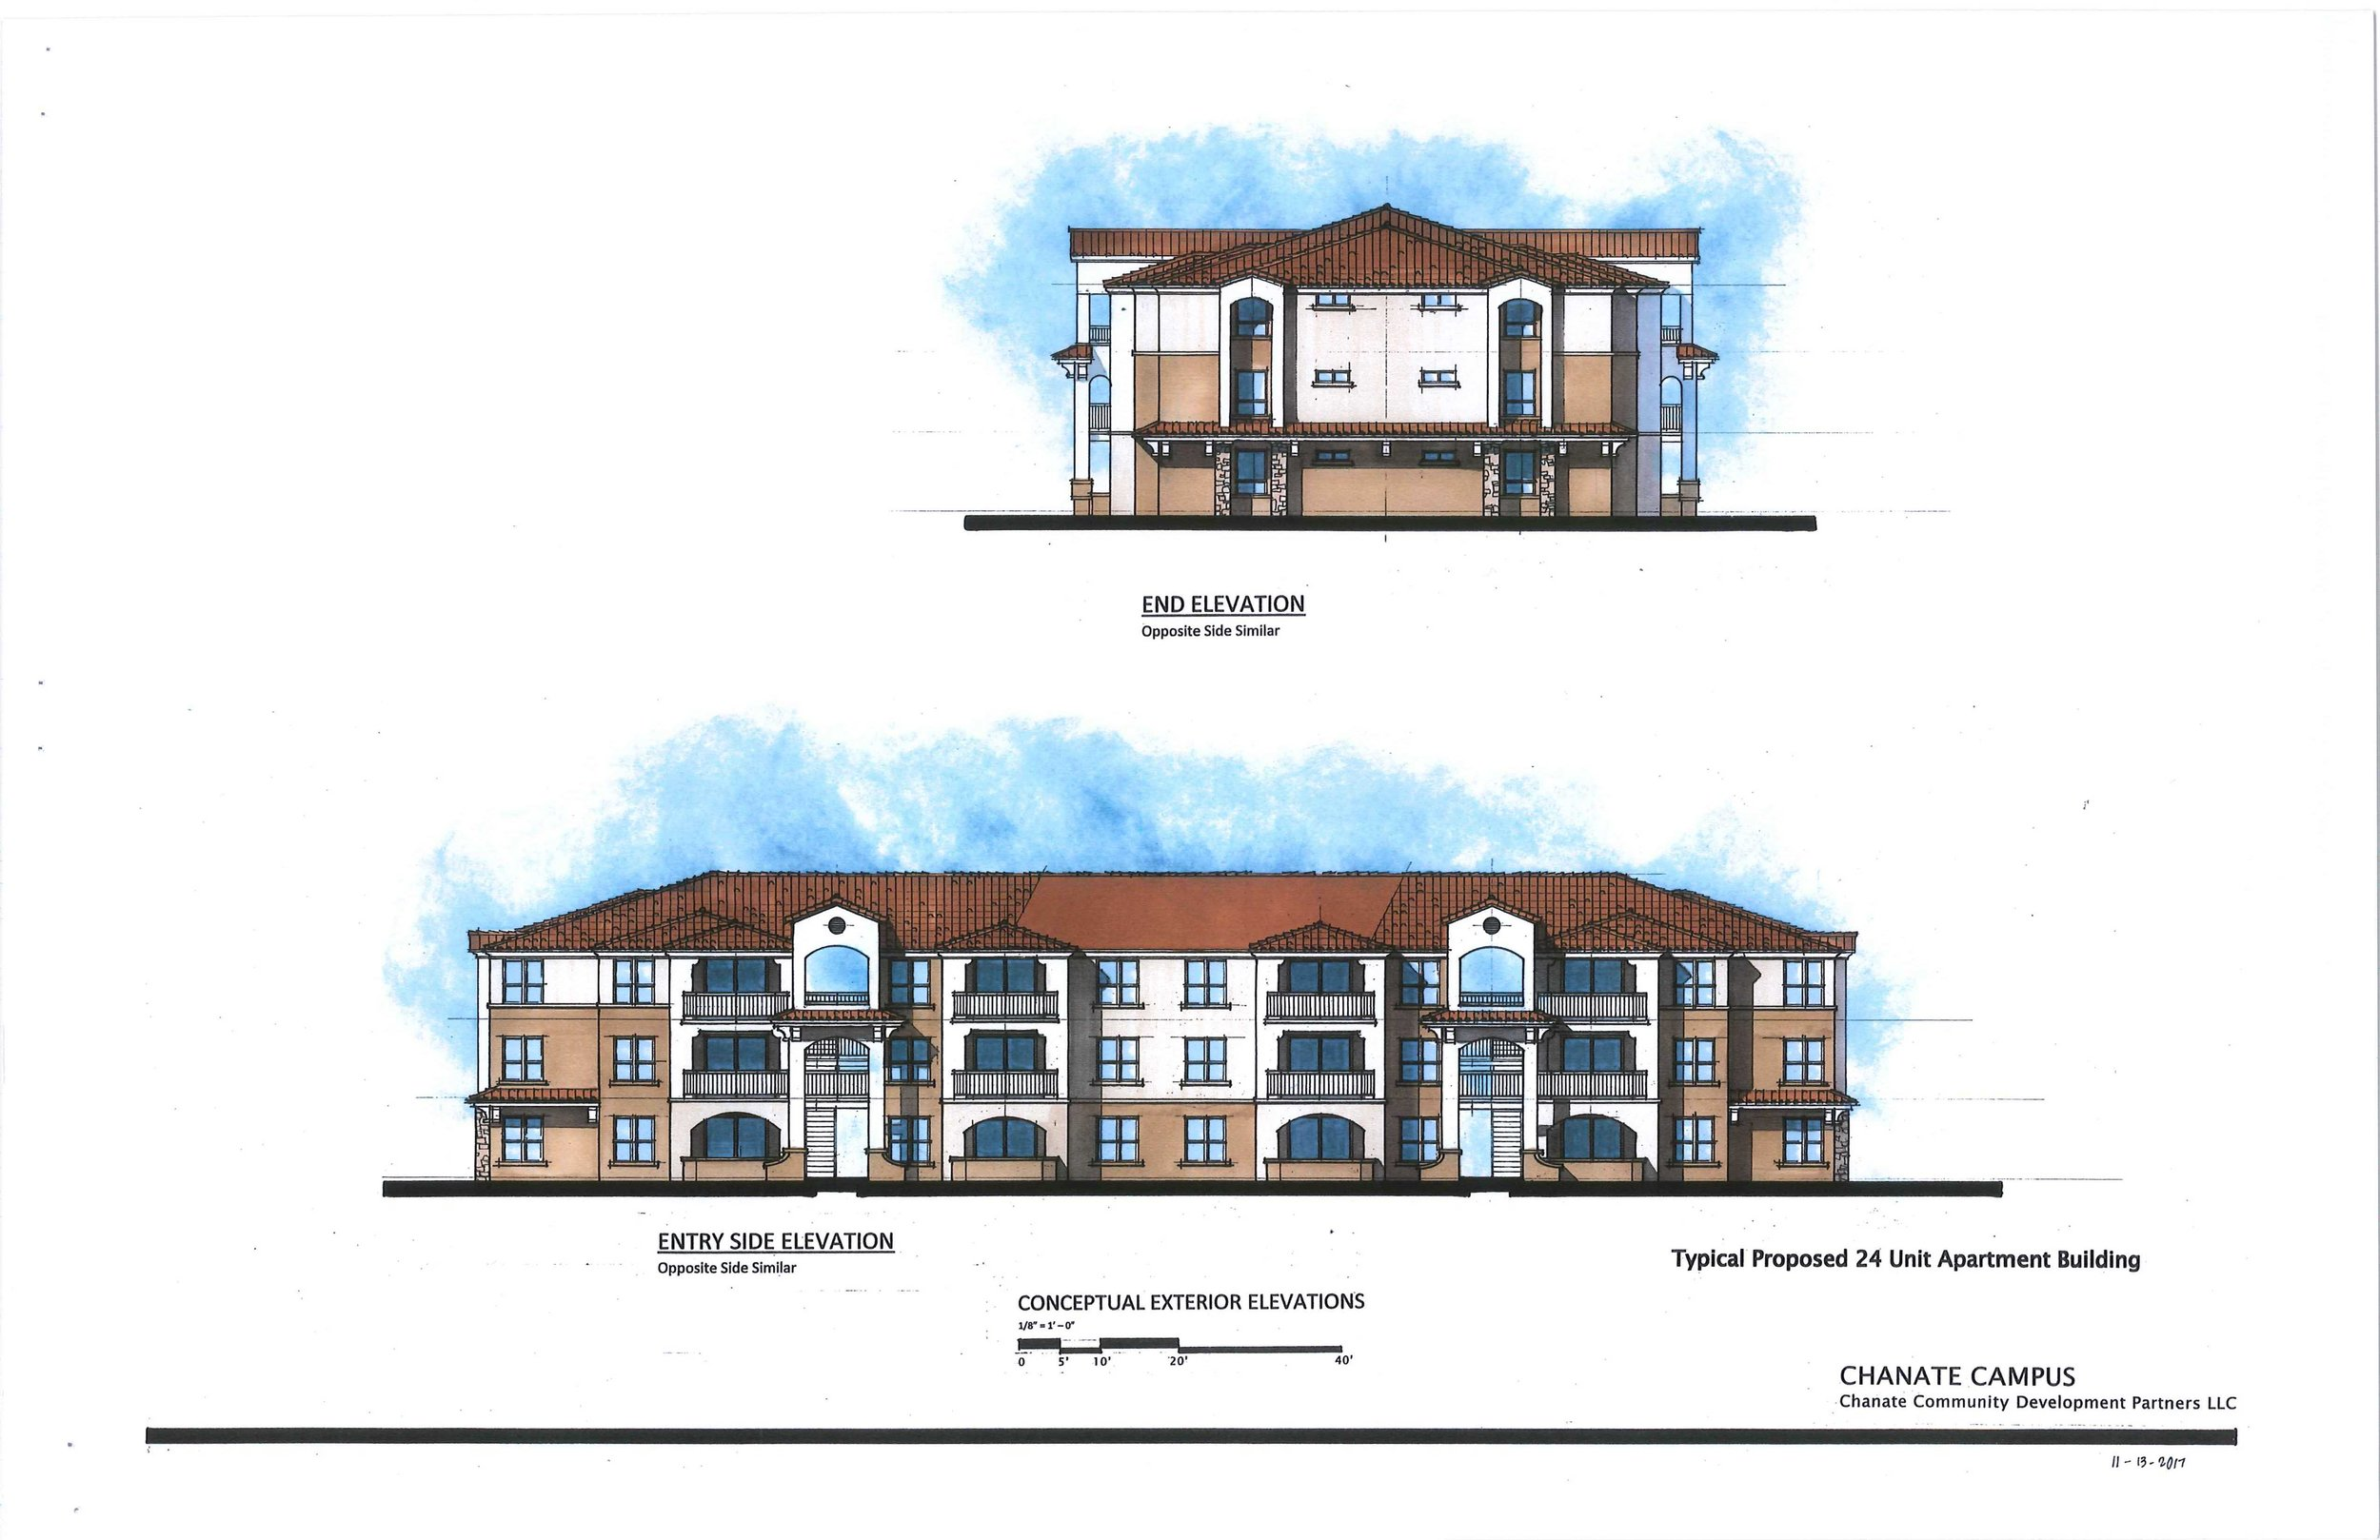 This is the conceptual elevation of the three story apartment house that will be used throughout the Chante Village. These will be placed in back of the single family dwellings along Chanate Court, Meadow Glen Drive, Hidden Valley Drive and Rolling Hill Drive.